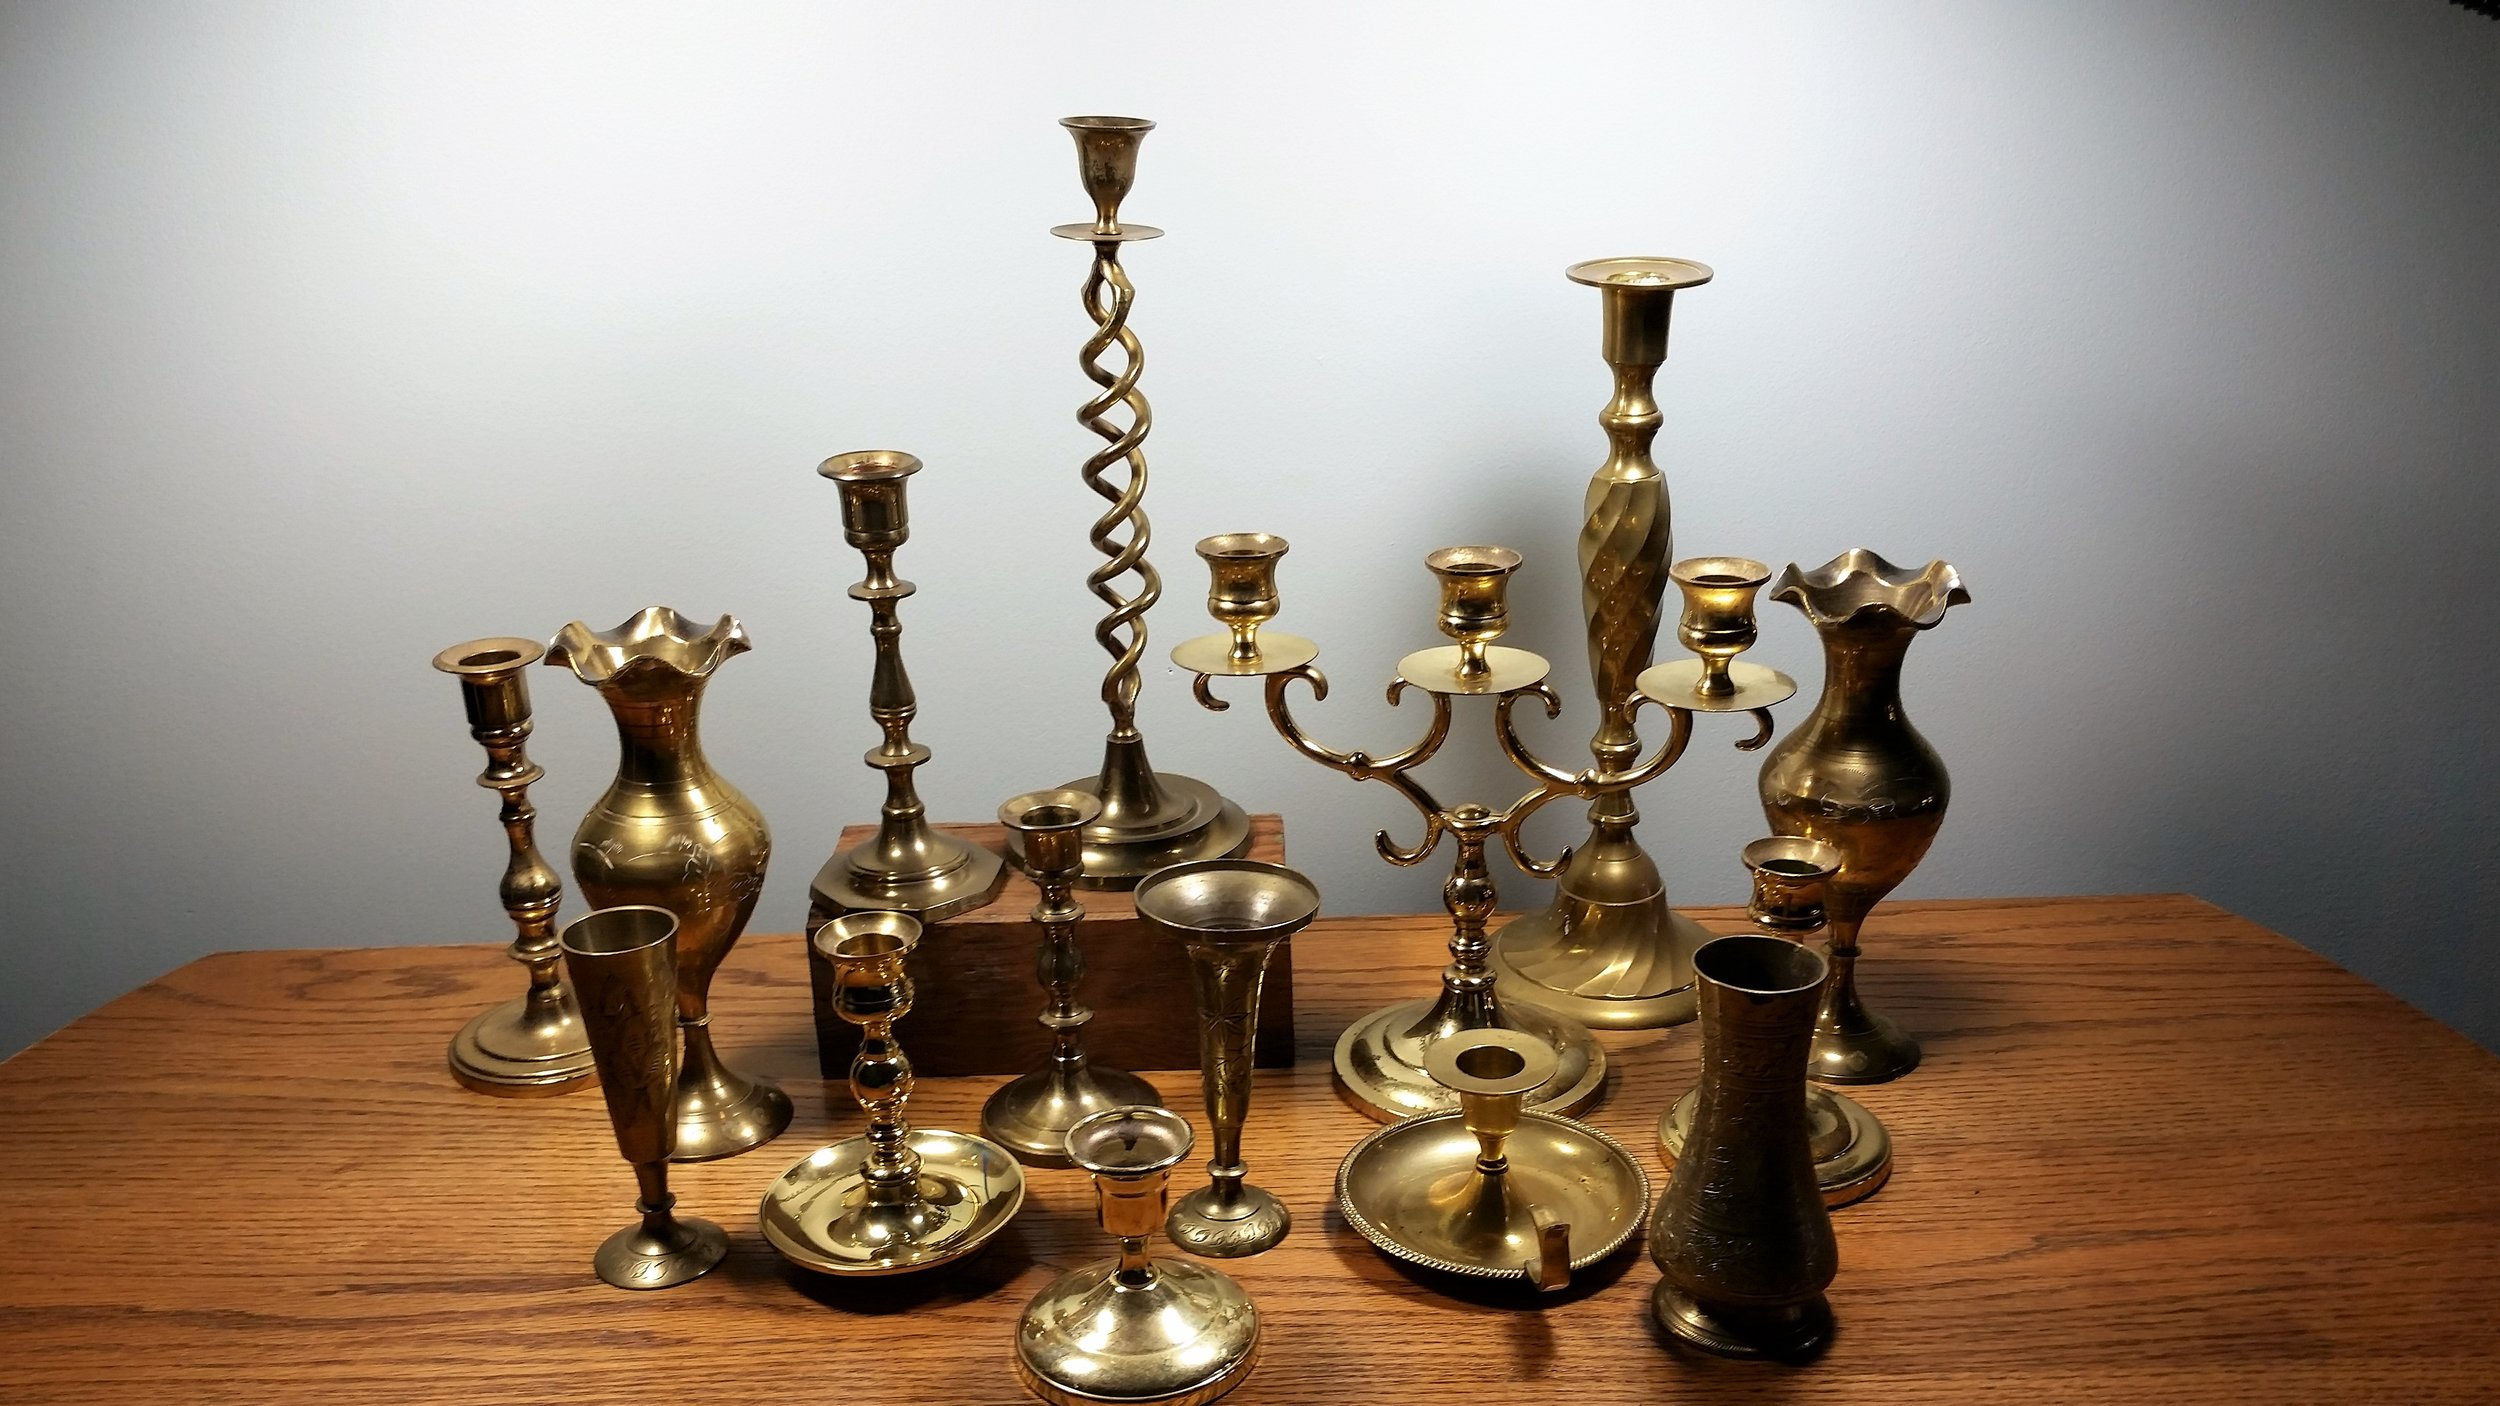 Brass candlesticks - Description ~ candleholders in a variety of heightsQuantity ~ 40+Price ~ $1 - $5